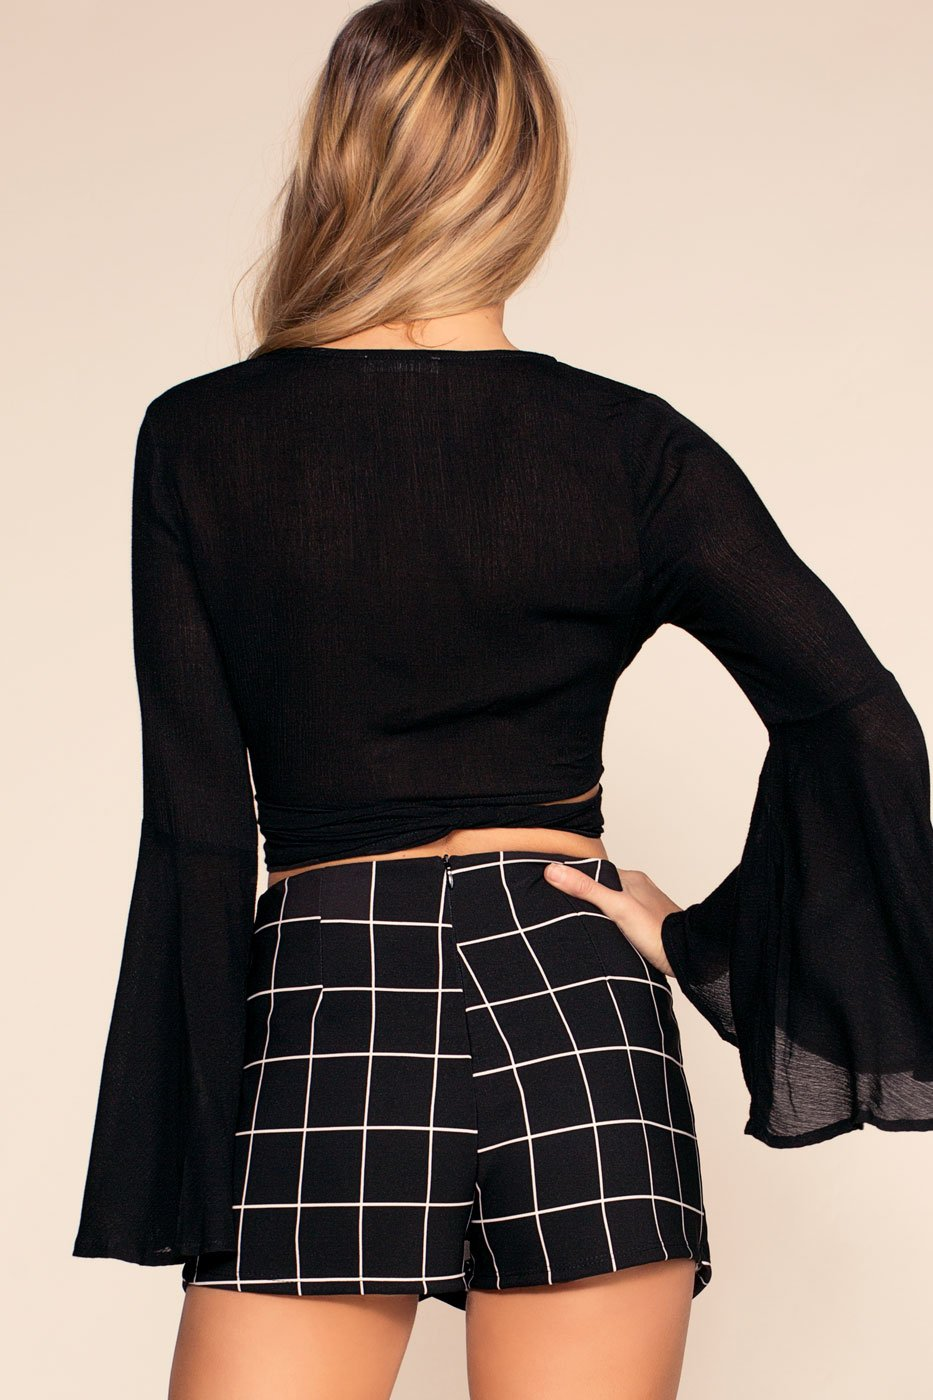 Black Envelope Skort